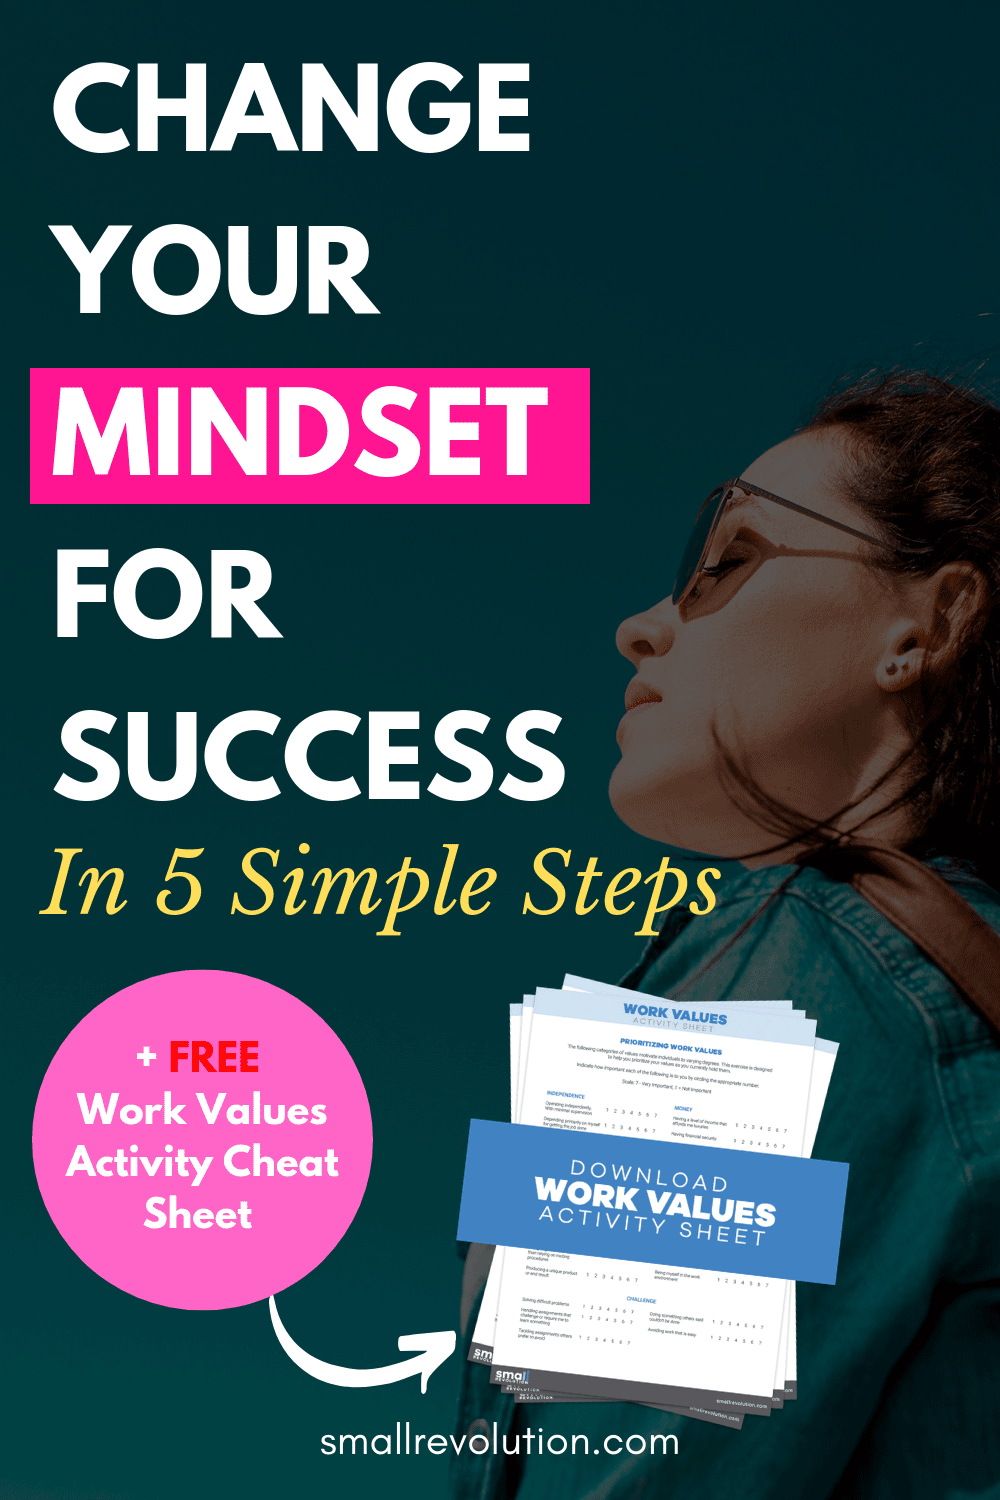 Change Your Mindset for Success in 5 Simple Steps